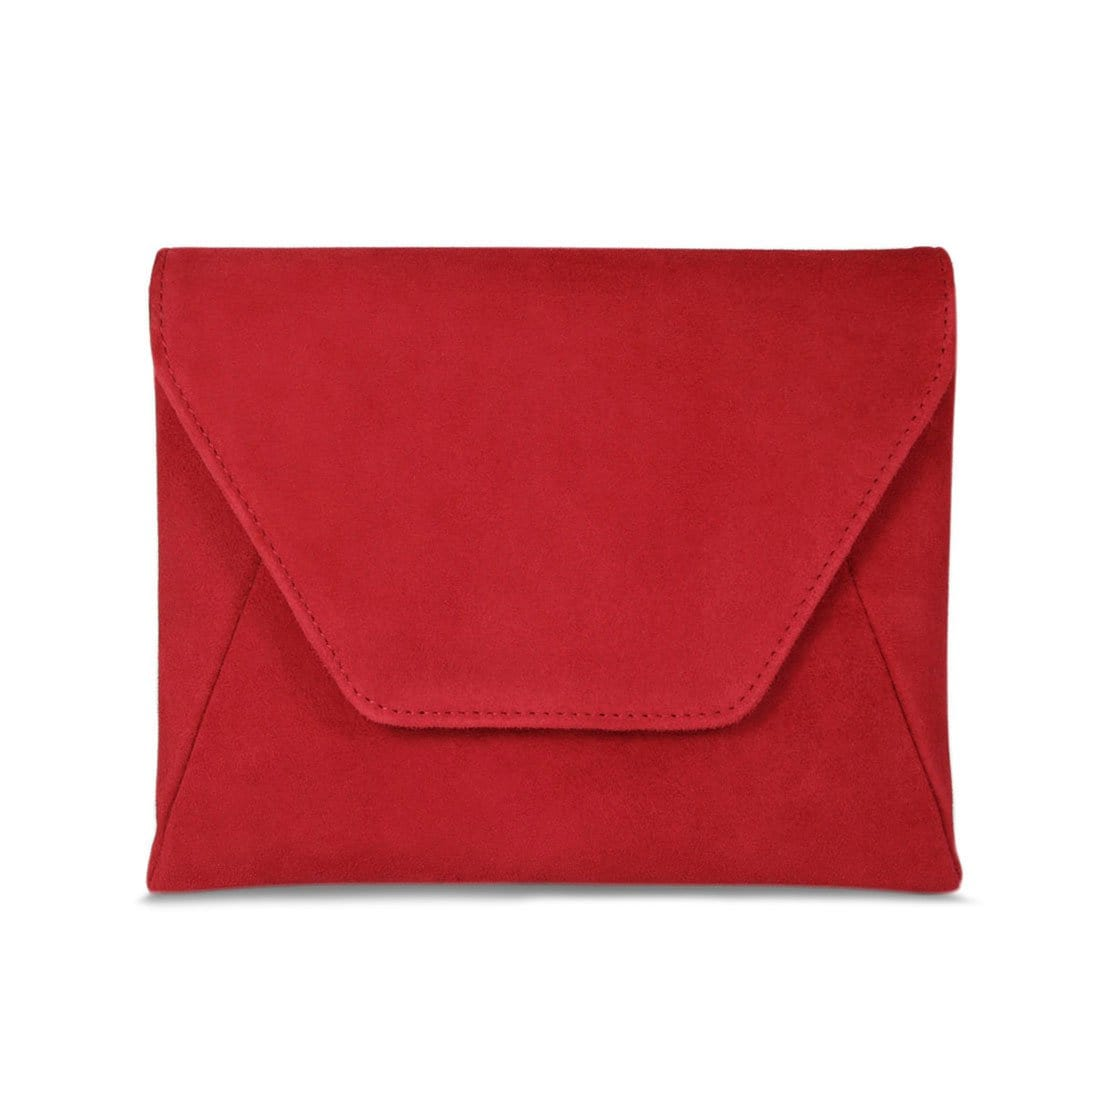 Red Suede Envelope Clutch